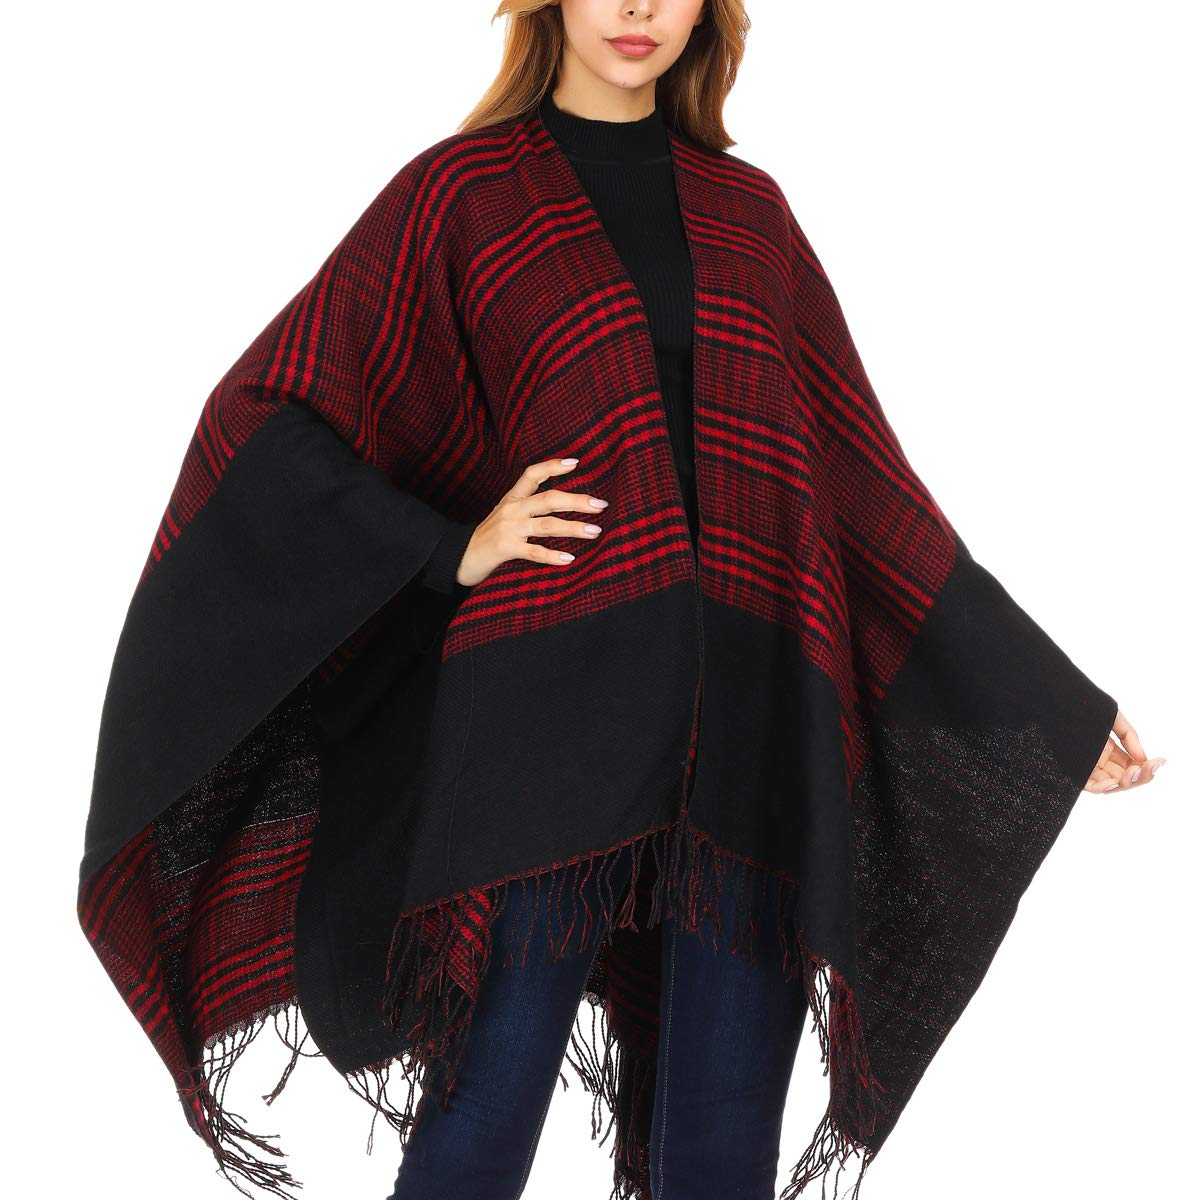 DoFiyeng Women Poncho Shawl Poncho Cape Cardigan Open Front Elegant Cape Wrap Shawl Wrap(Black red stripes) by DoFiyeng